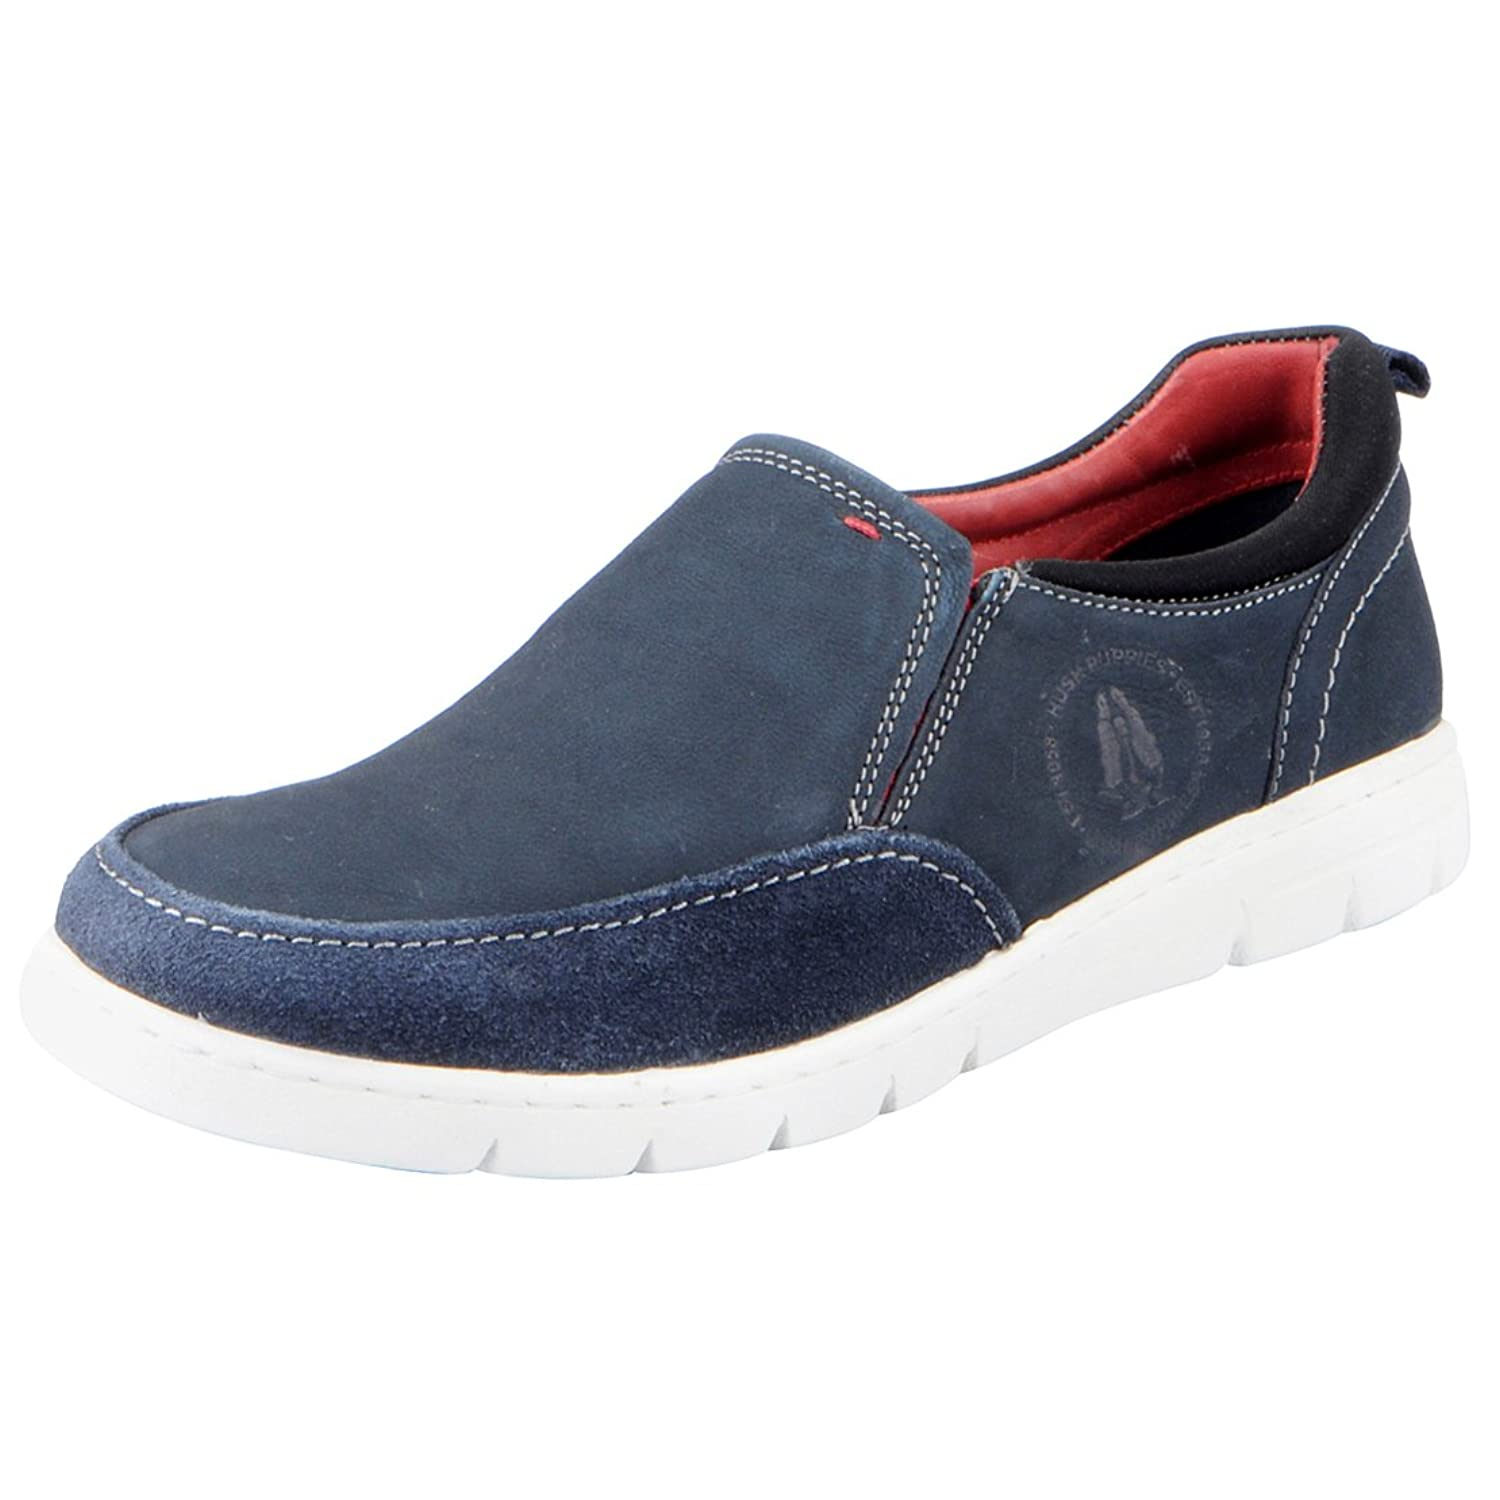 Hush Puppies Mens Blue Loafers 853 9912 41 Buy Online At Low